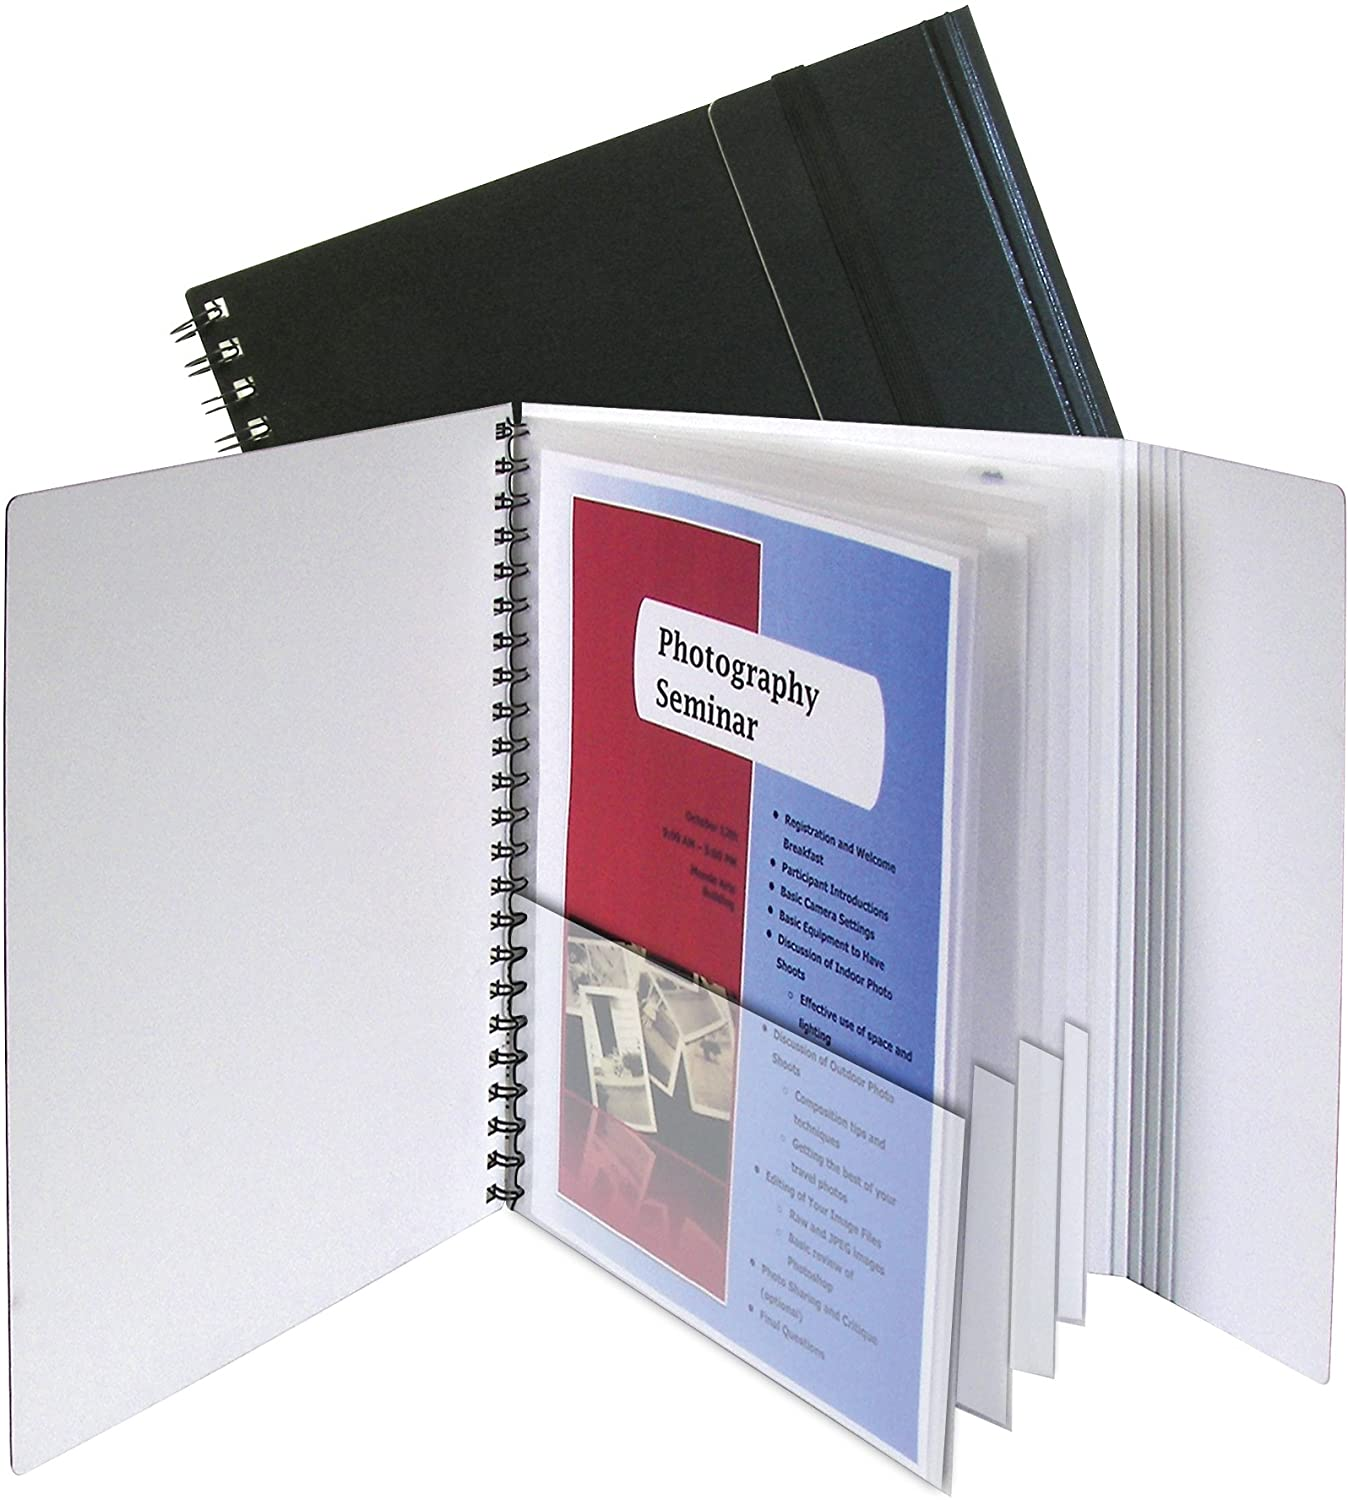 C-Line 8-Pocket Portfolio with Security Flap, Black Cover with White Interior, 11.625 x 10.5 Inches (32881)